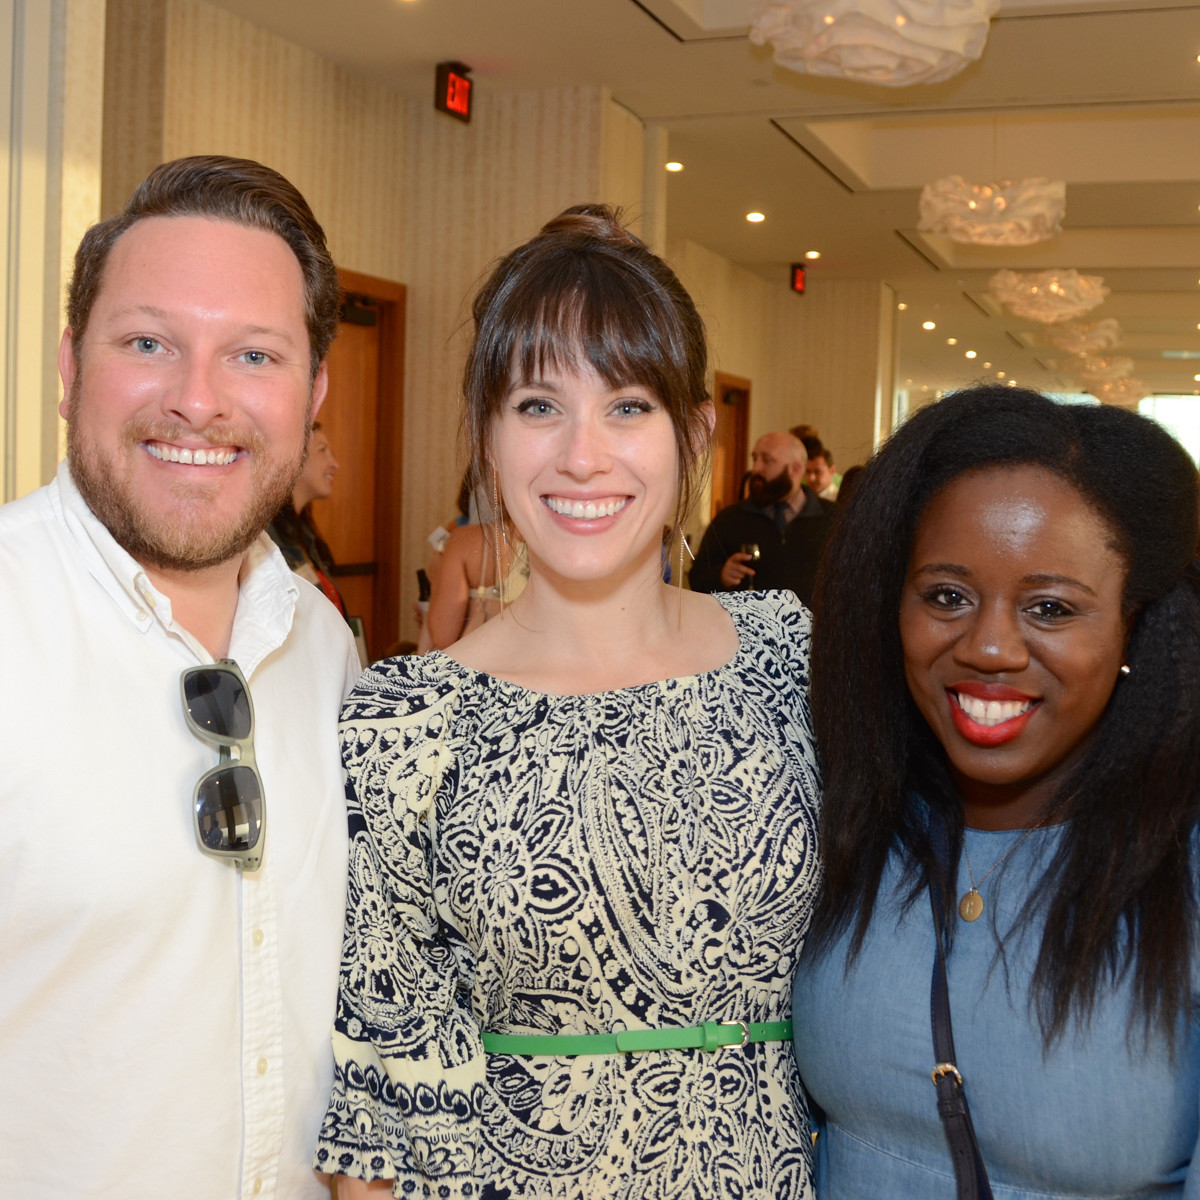 YP Zoo Aug 2015 Kenny Terrell, Marianne Terrell, Lauren Beamon